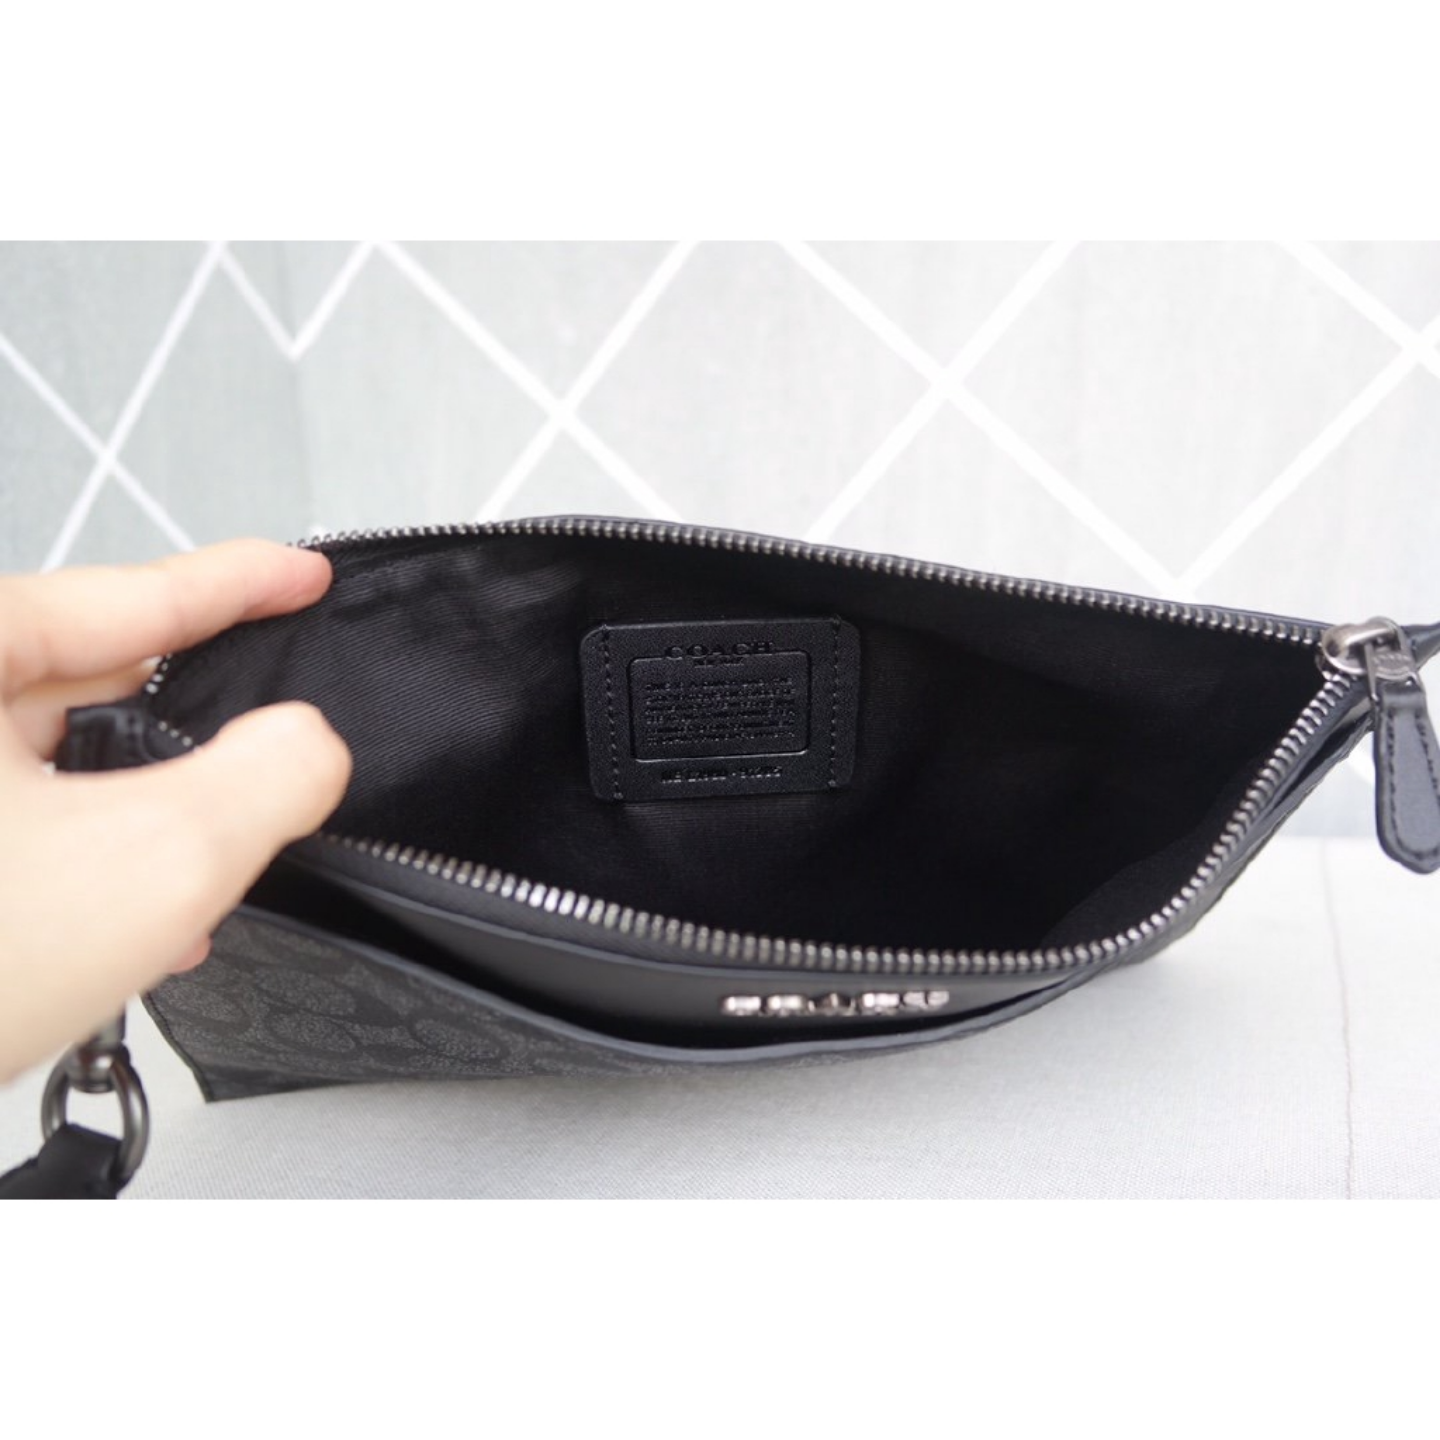 Men's Clutch Coach Bag F91285 Bag Small Clutch Clutch Bag Leather Clutch Bag